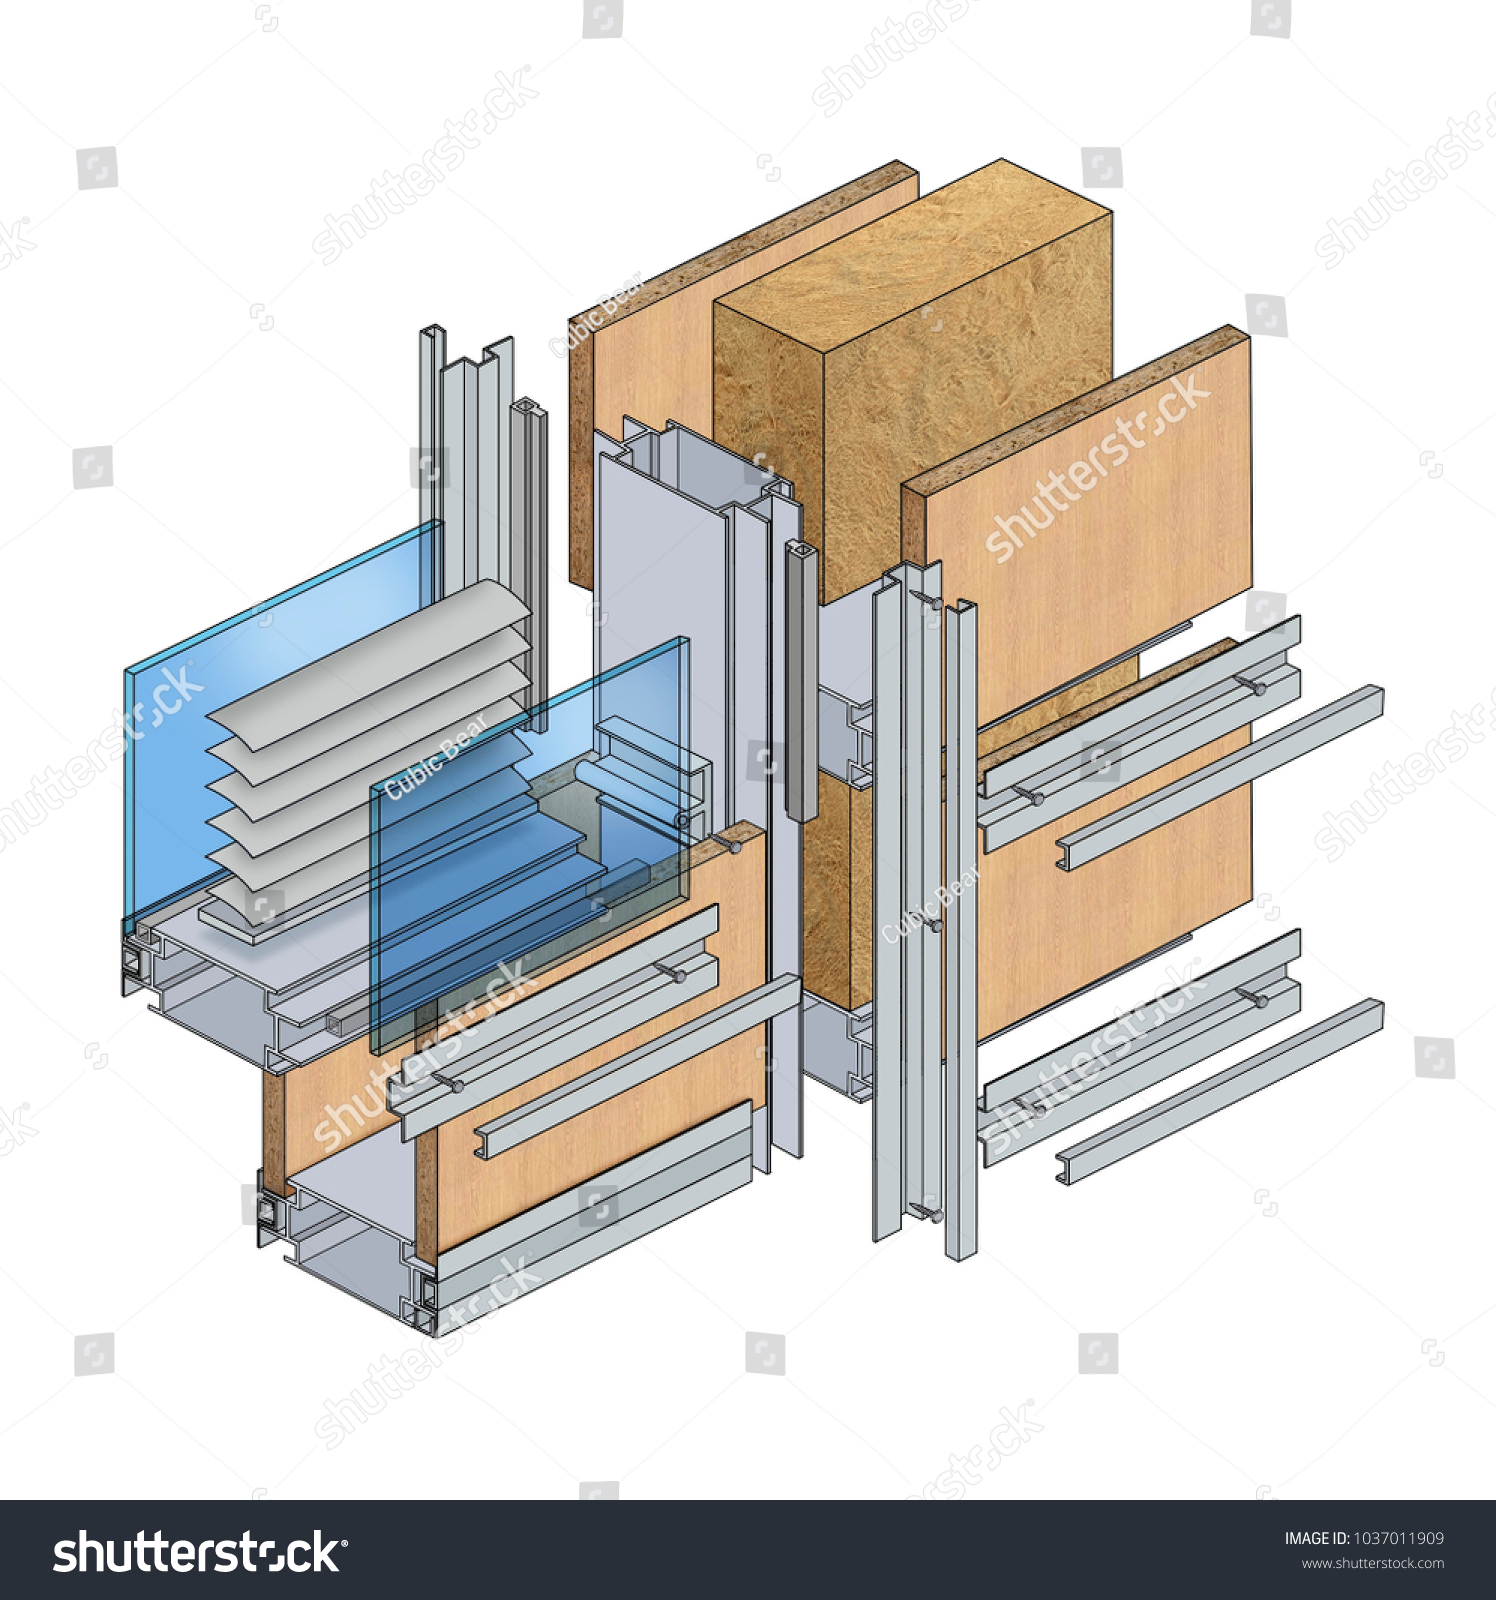 Schematic Representation Wall Section Stock Illustration 1037011909 Of The In A